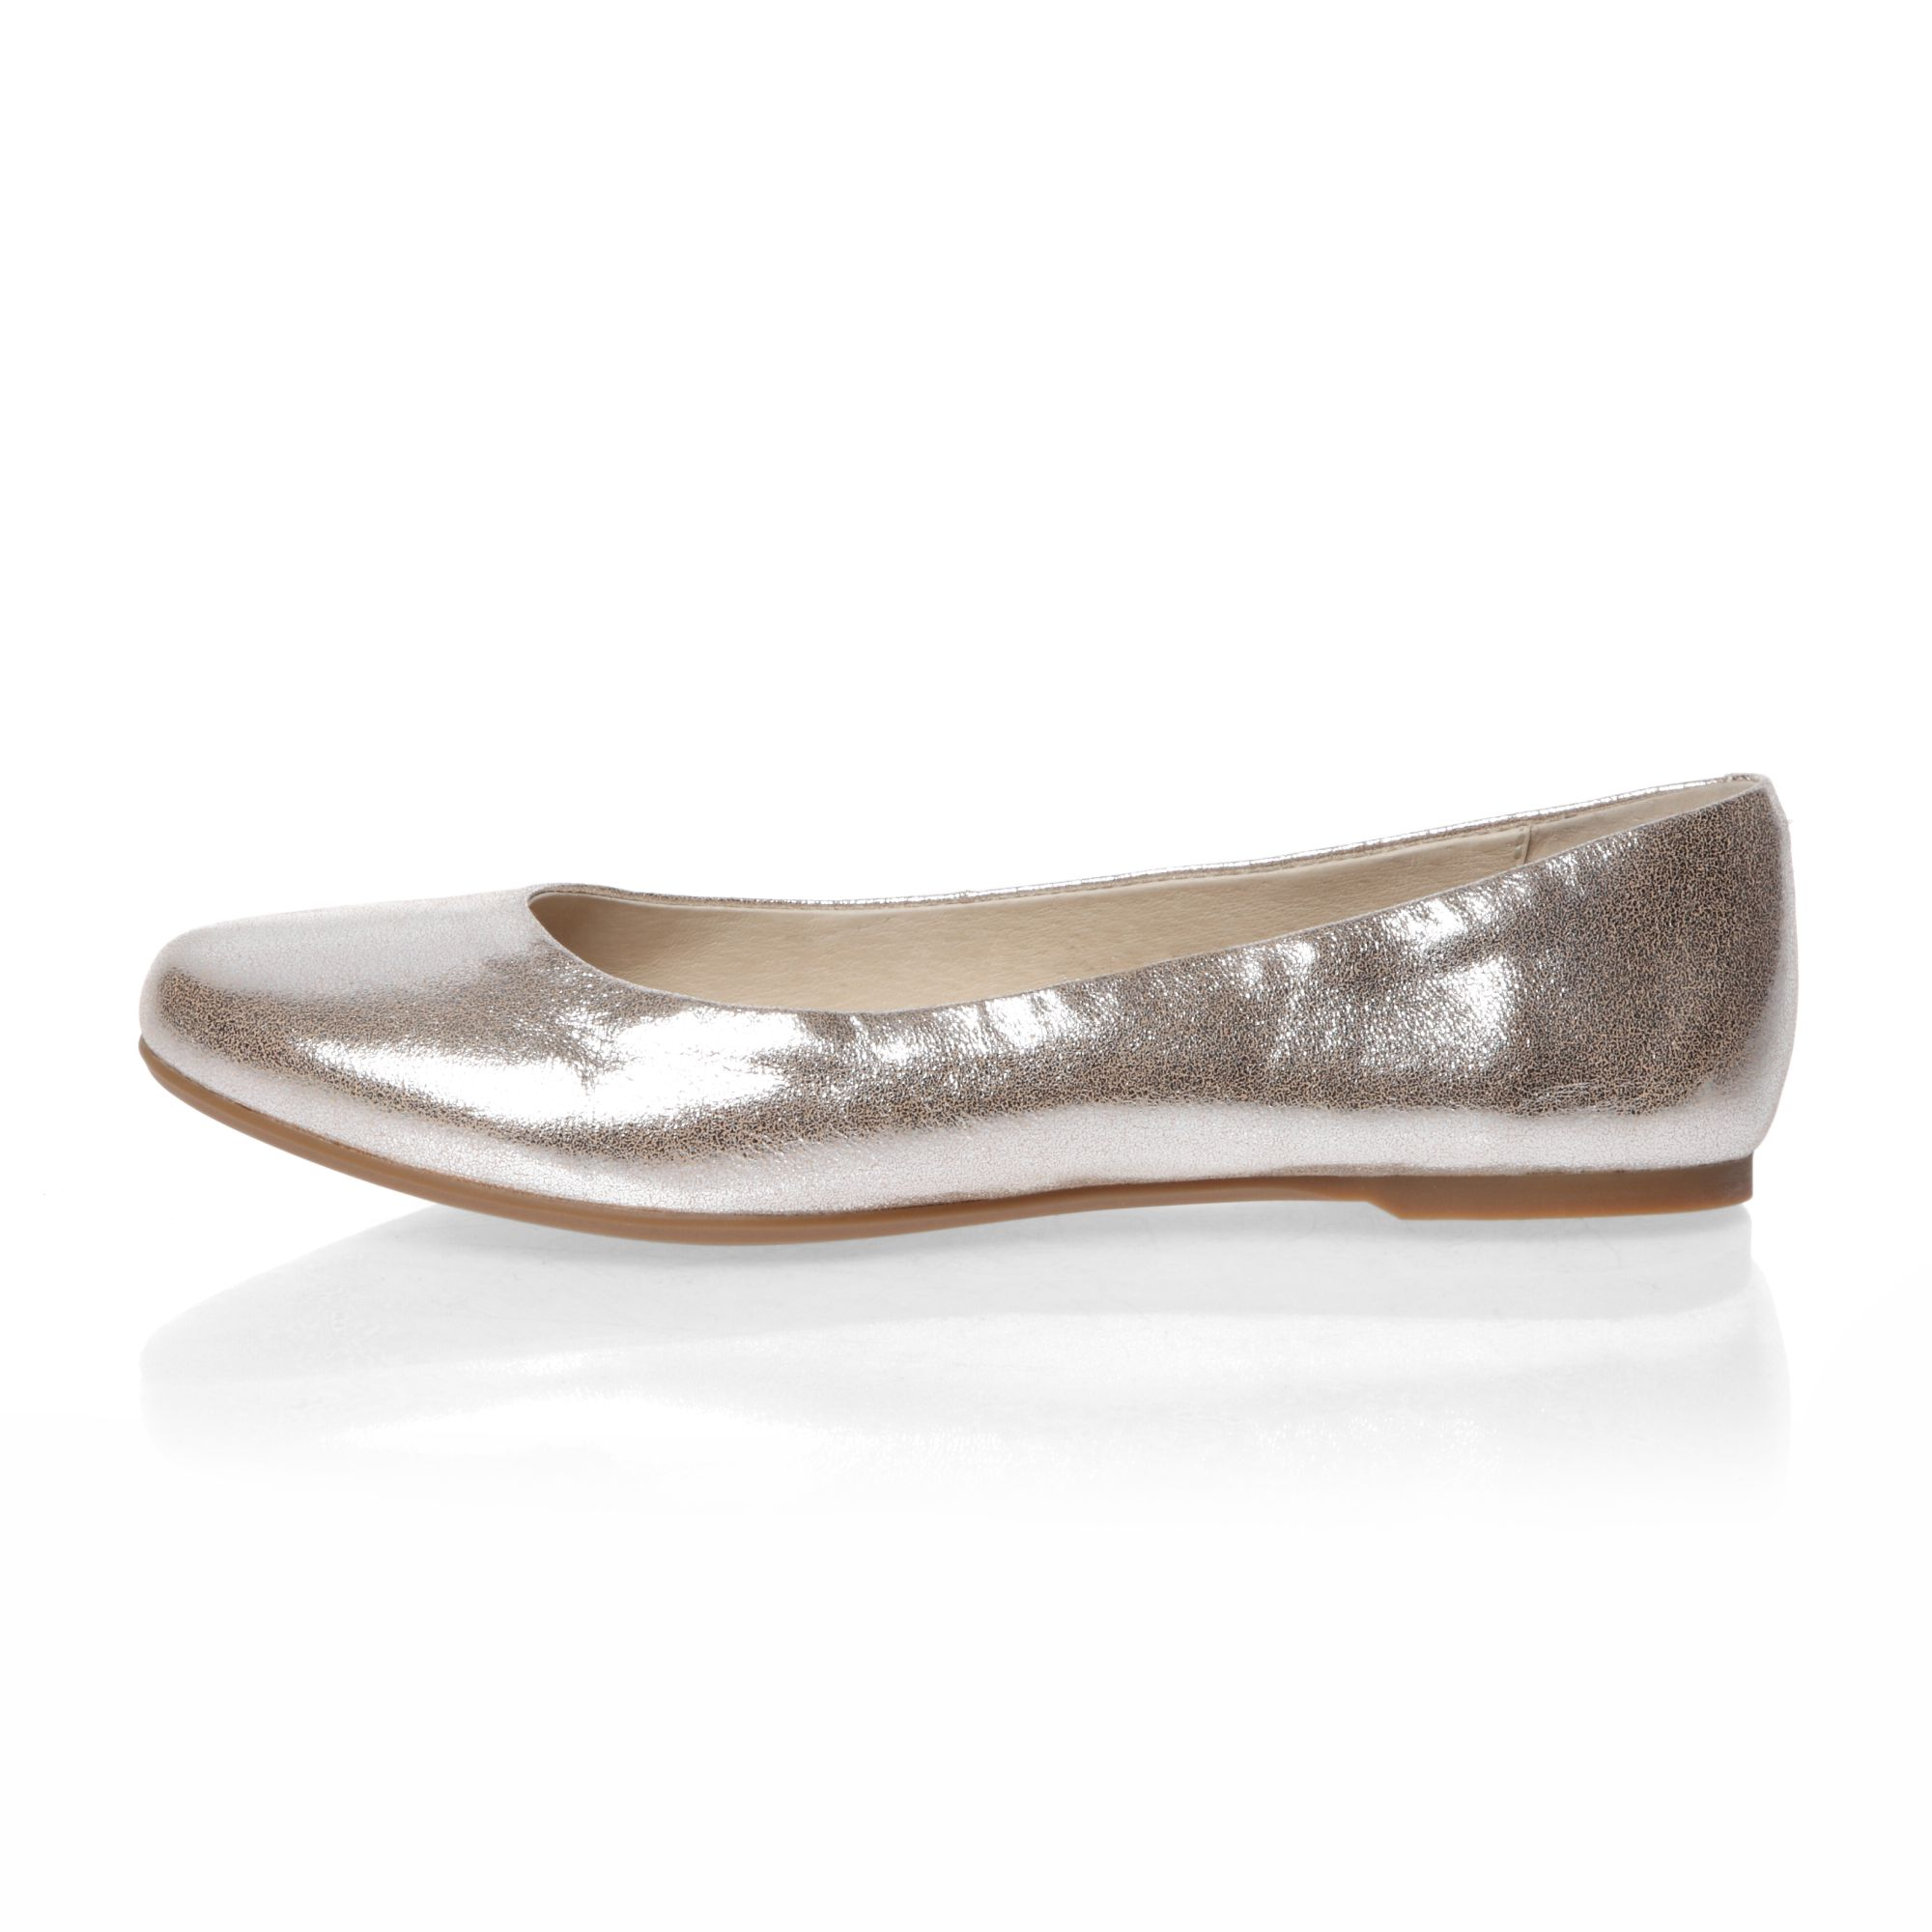 Round toe ballerina shoes